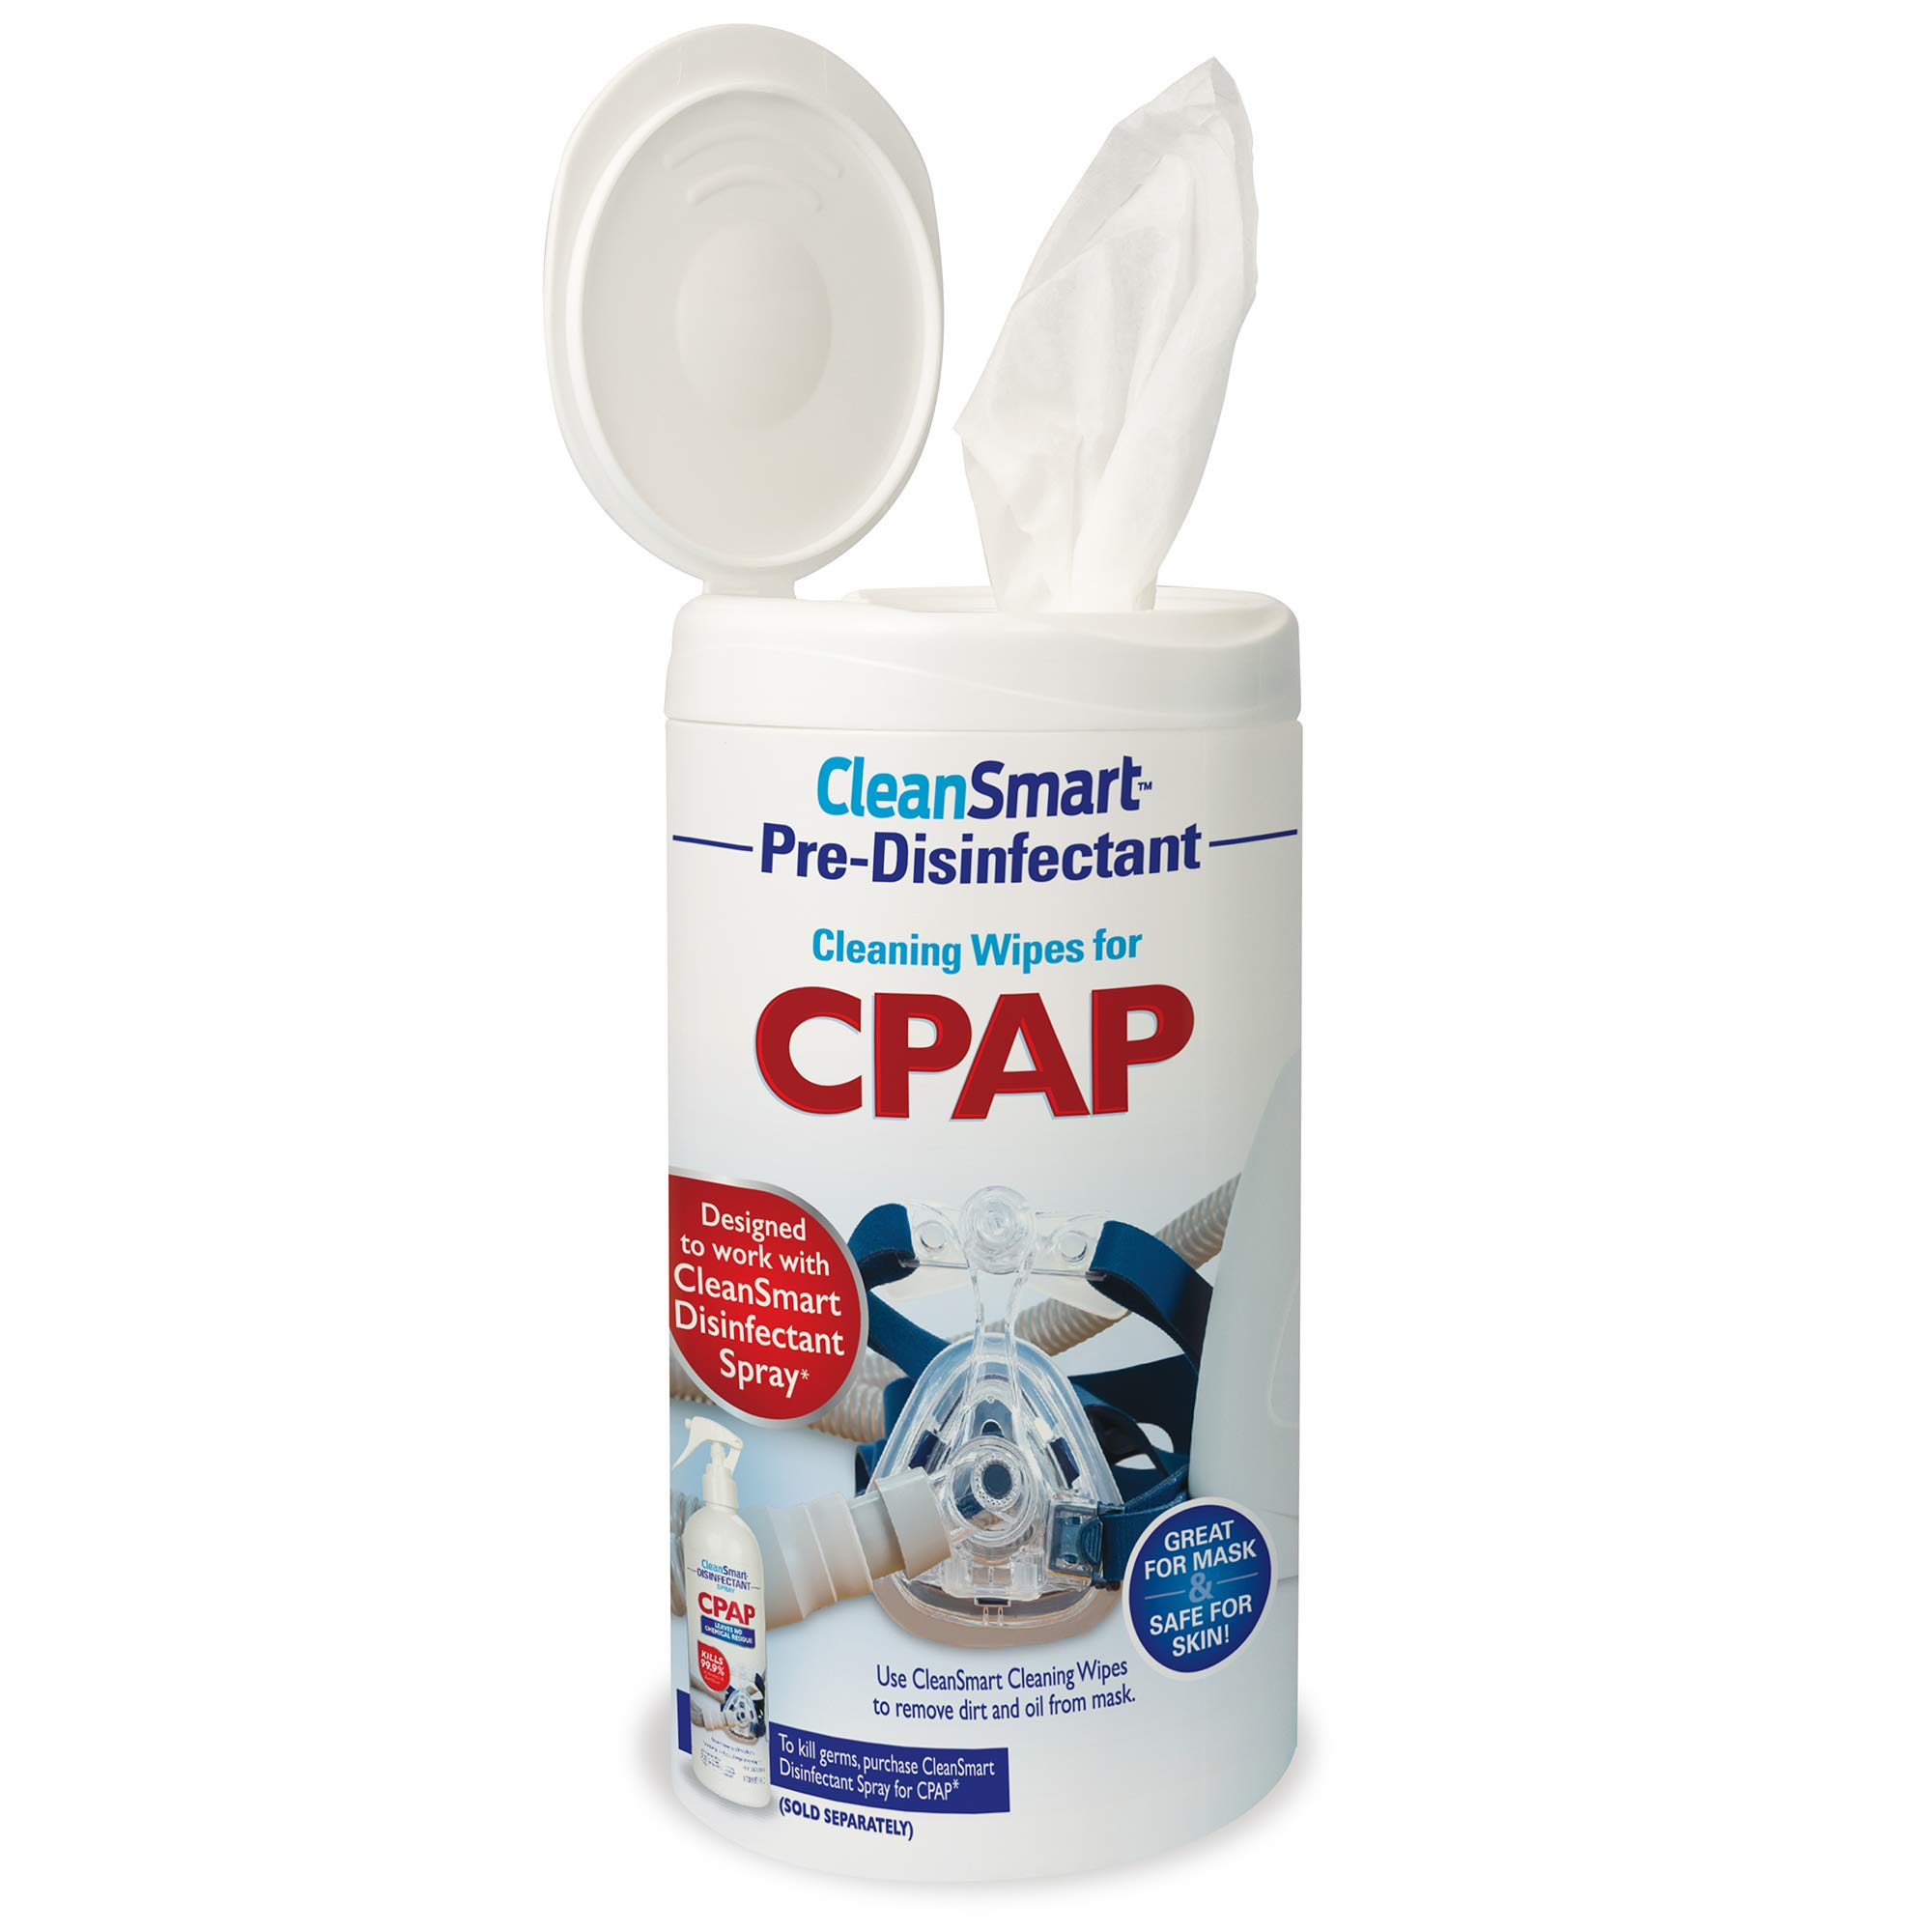 CleanSmart CPAP Cleaning Wipes, Unscented and Formulated to Clean CPAP Mask and Equipment Without Irritating Skin, 75 Count